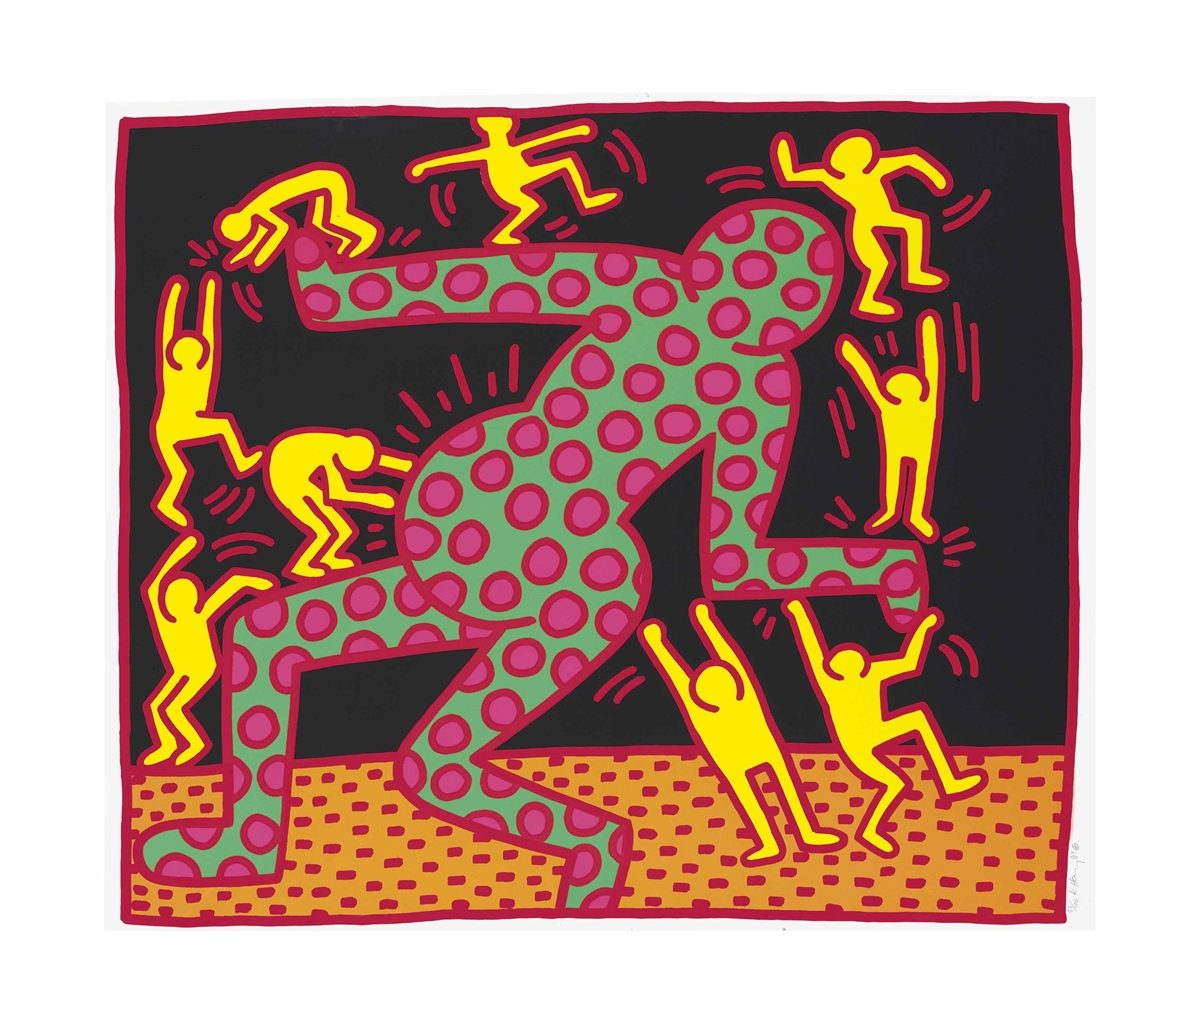 Keith Haring-Fertility Suite: One Print-1983